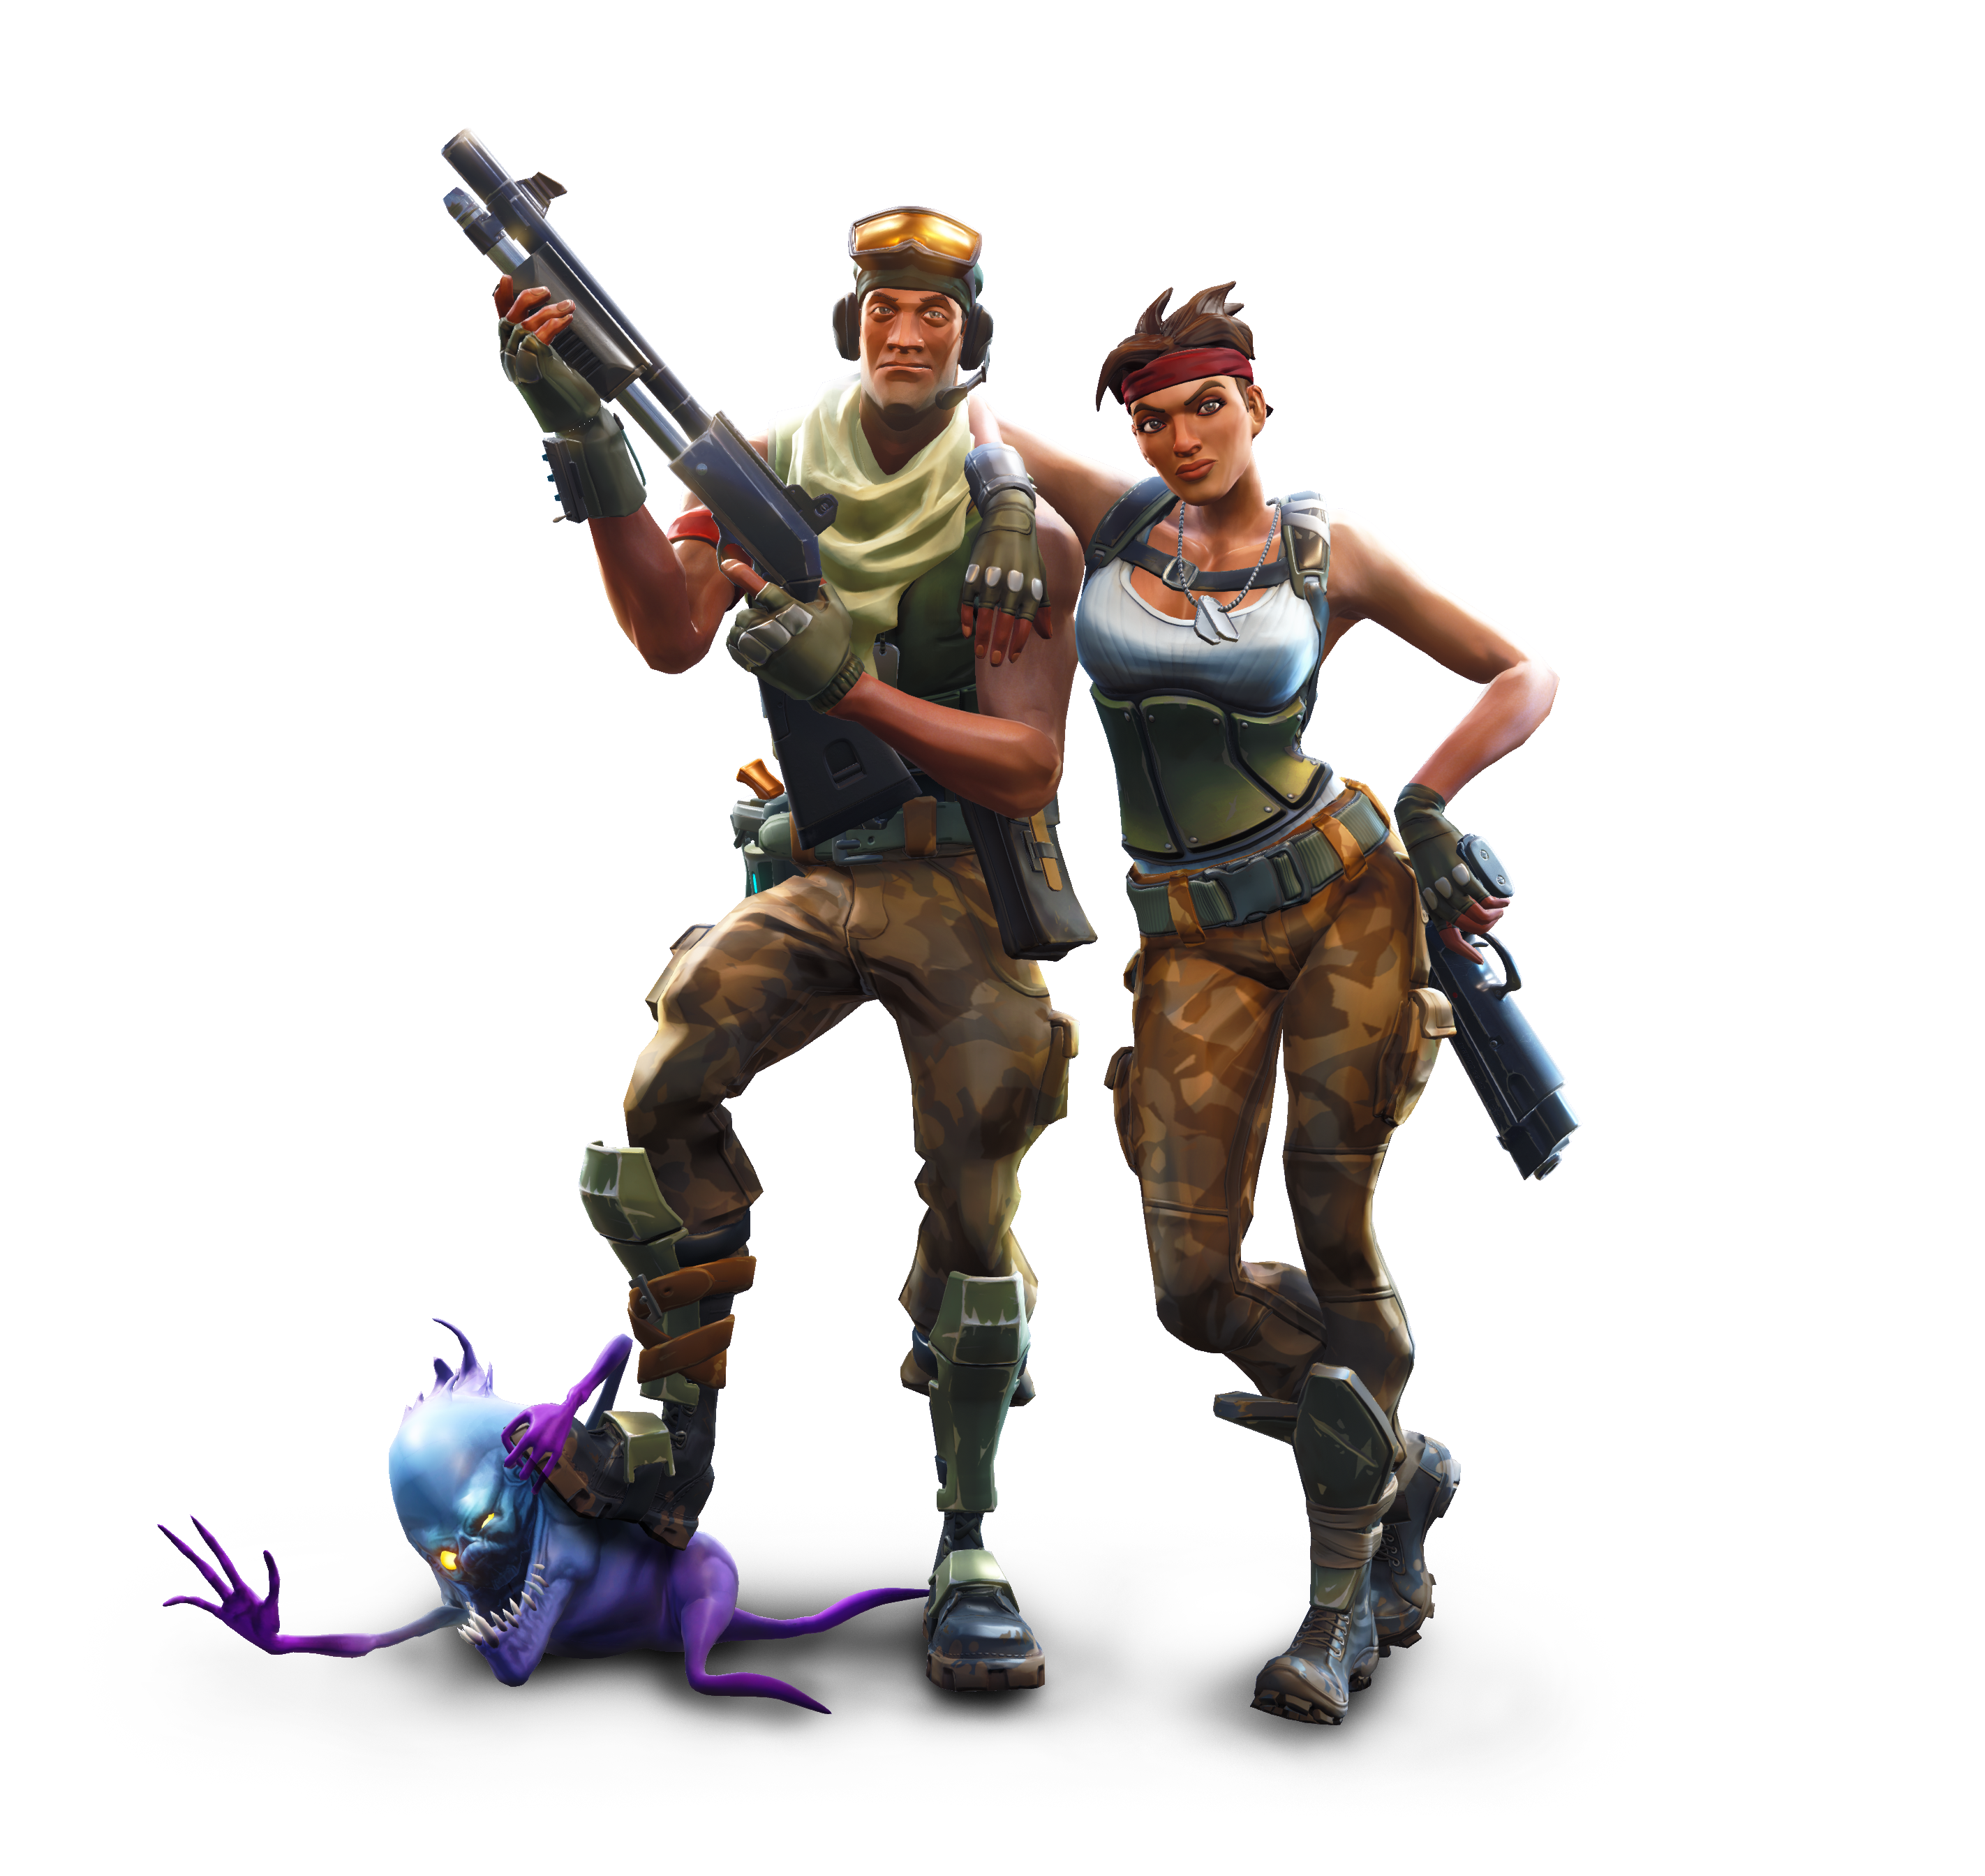 fortnite clipart transparent background